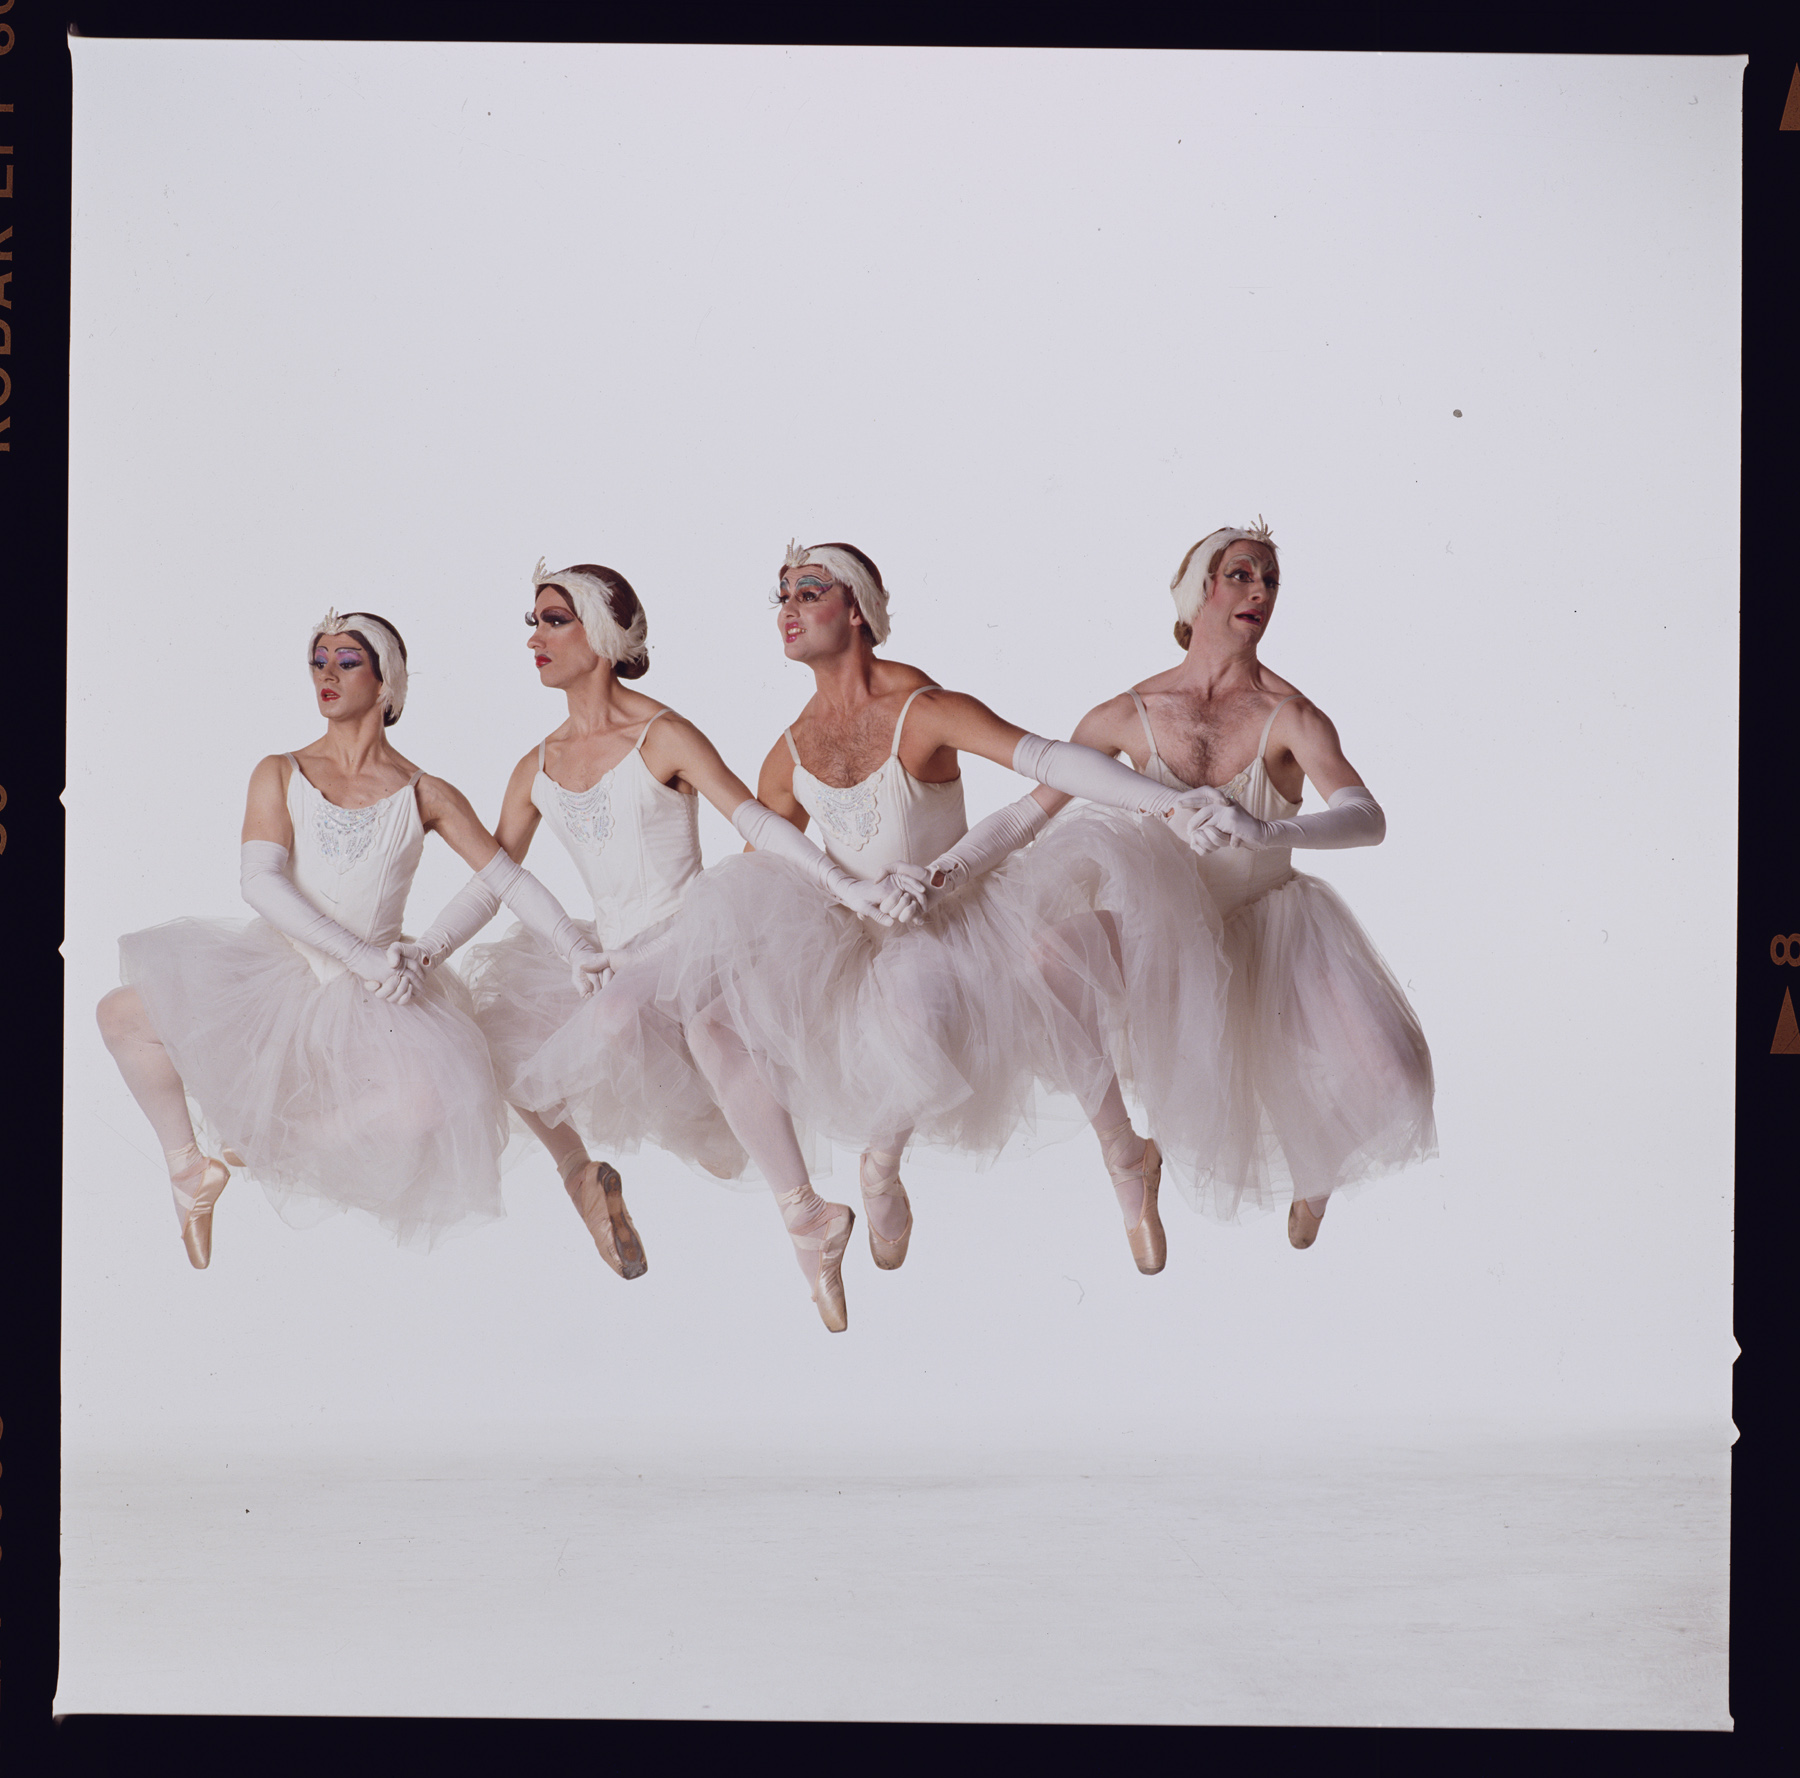 Les Ballets Trockadero de Monte Carlo - photo by Lois Greenfield